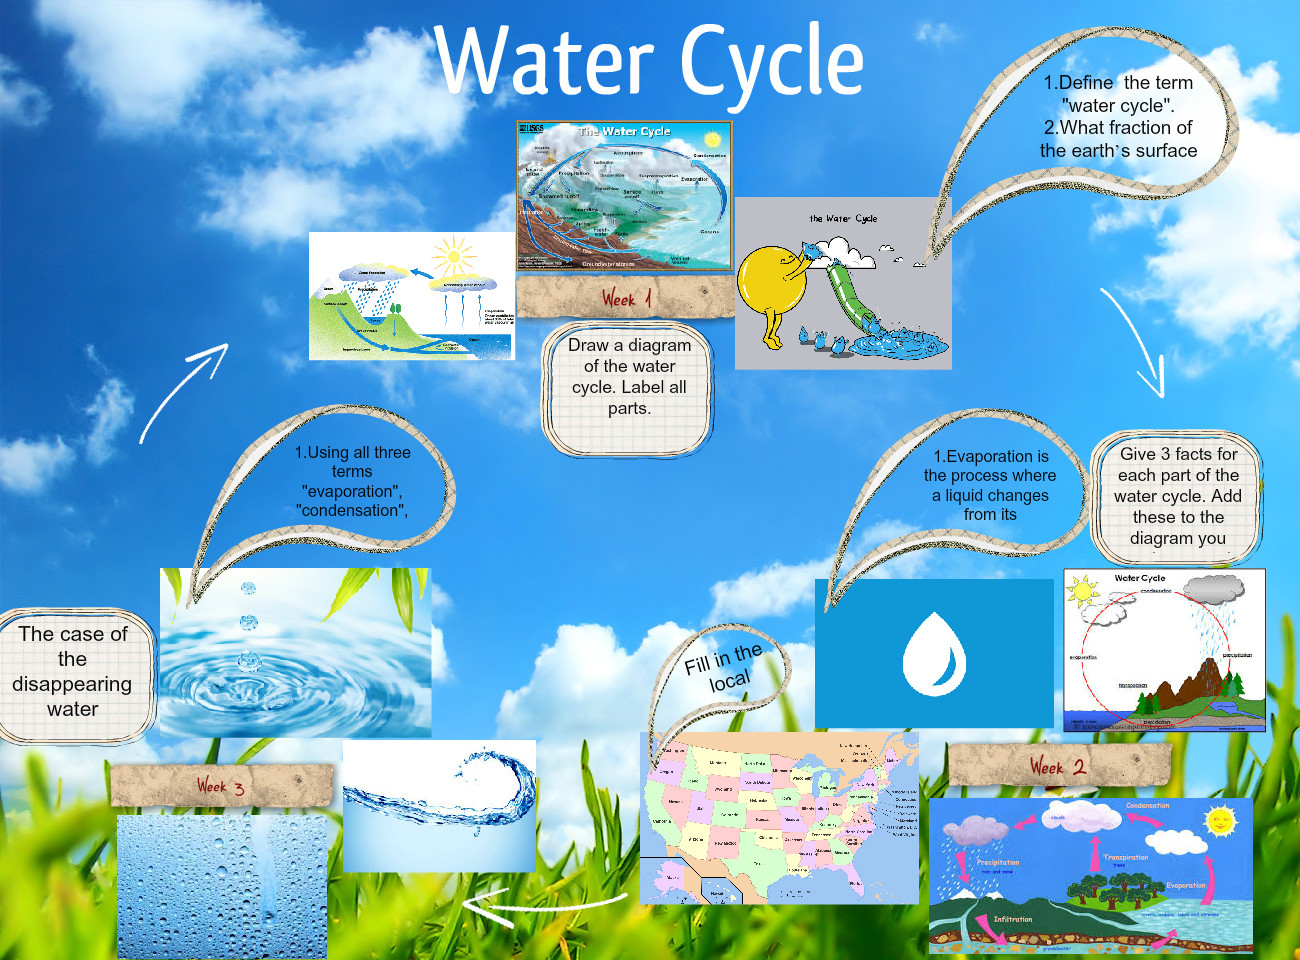 Water cycle bug cycle life lfe life lyfecicle glogster edu water cycle bug cycle life lfe life lyfecicle glogster edu interactive multimedia posters ccuart Gallery